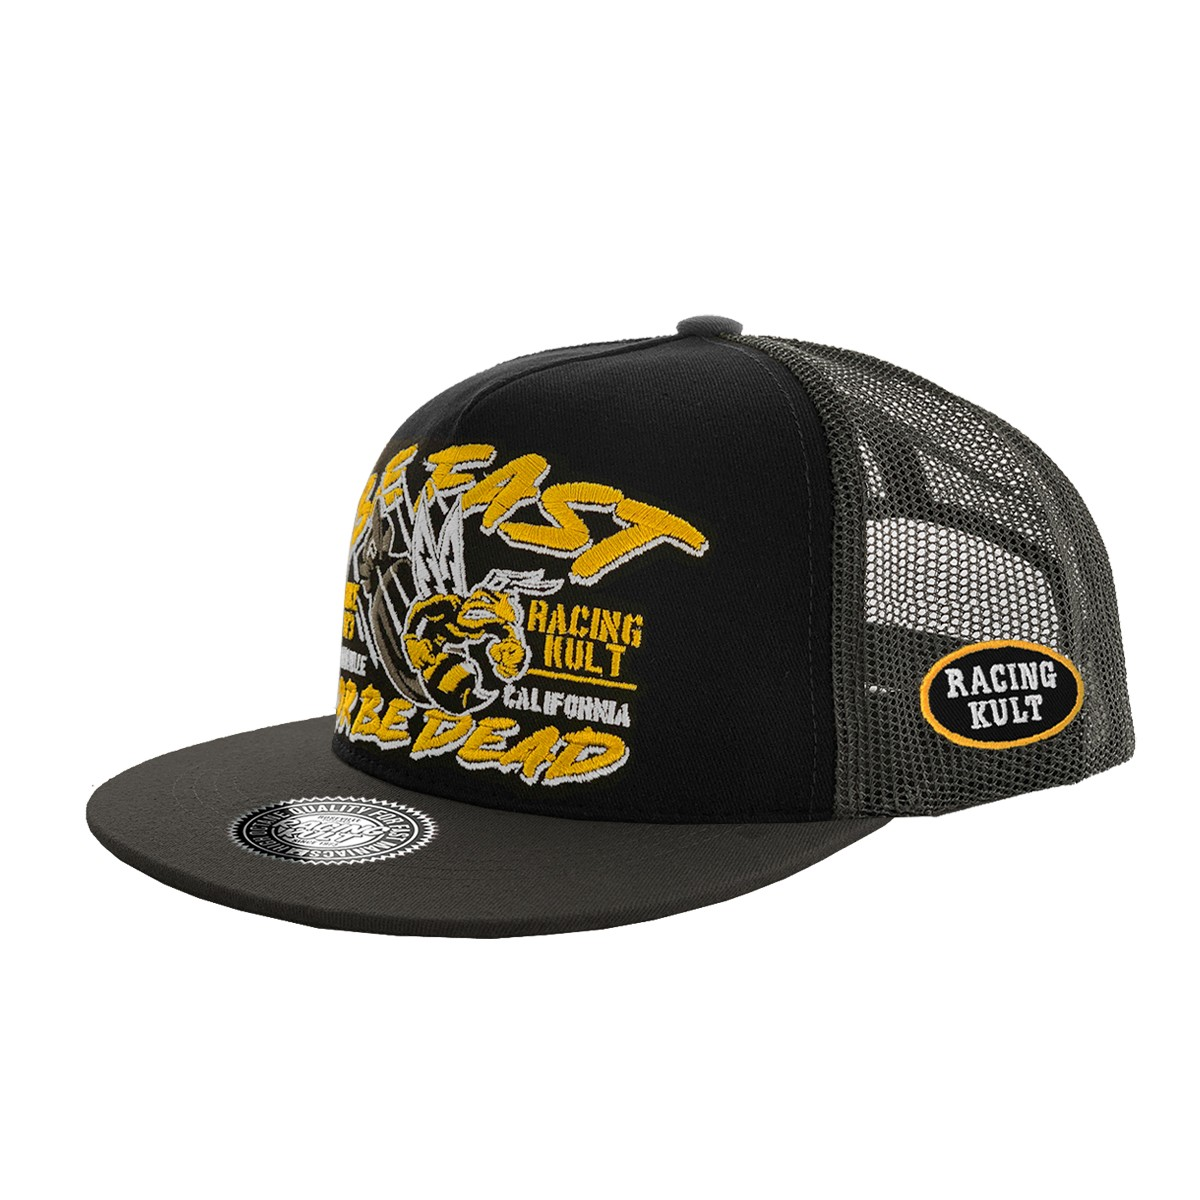 Racing Kult Be Fast or Be Dead Snapback Cap mit Stick Unisex